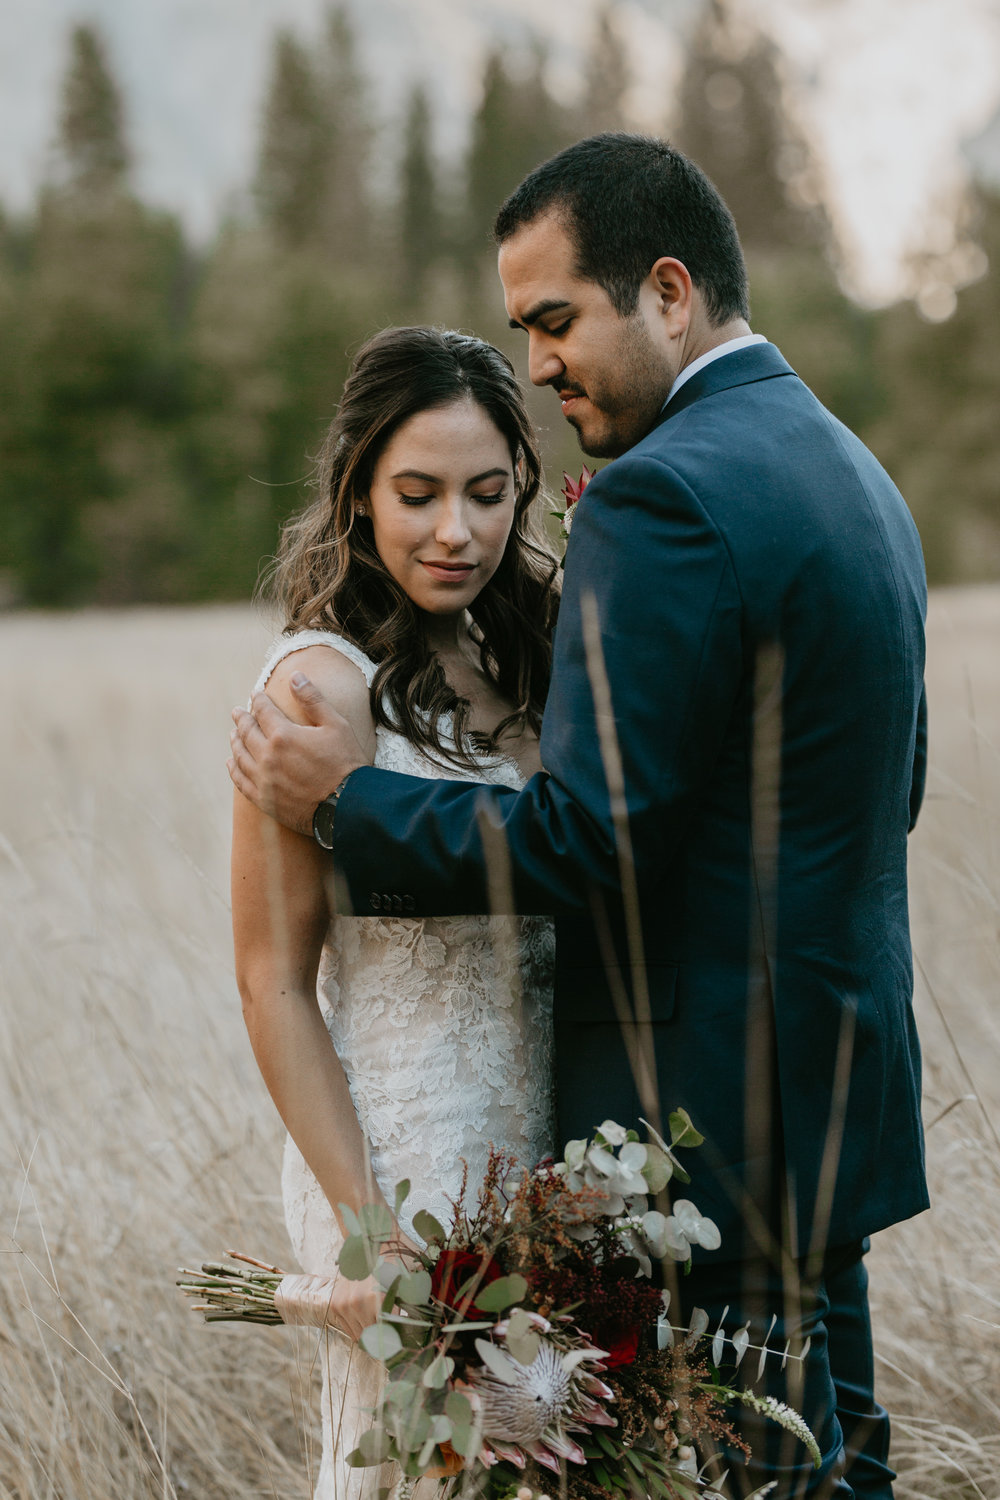 nicole-daacke-photography-intimate-elopement-wedding-yosemite-national-park-california-taft-point-sunset-photos-yosemite-valley-tunnel-view-first-look-sunrise-golden-granite-hiking-adventure-wedding-adventurous-elopement-photographer-9.jpg